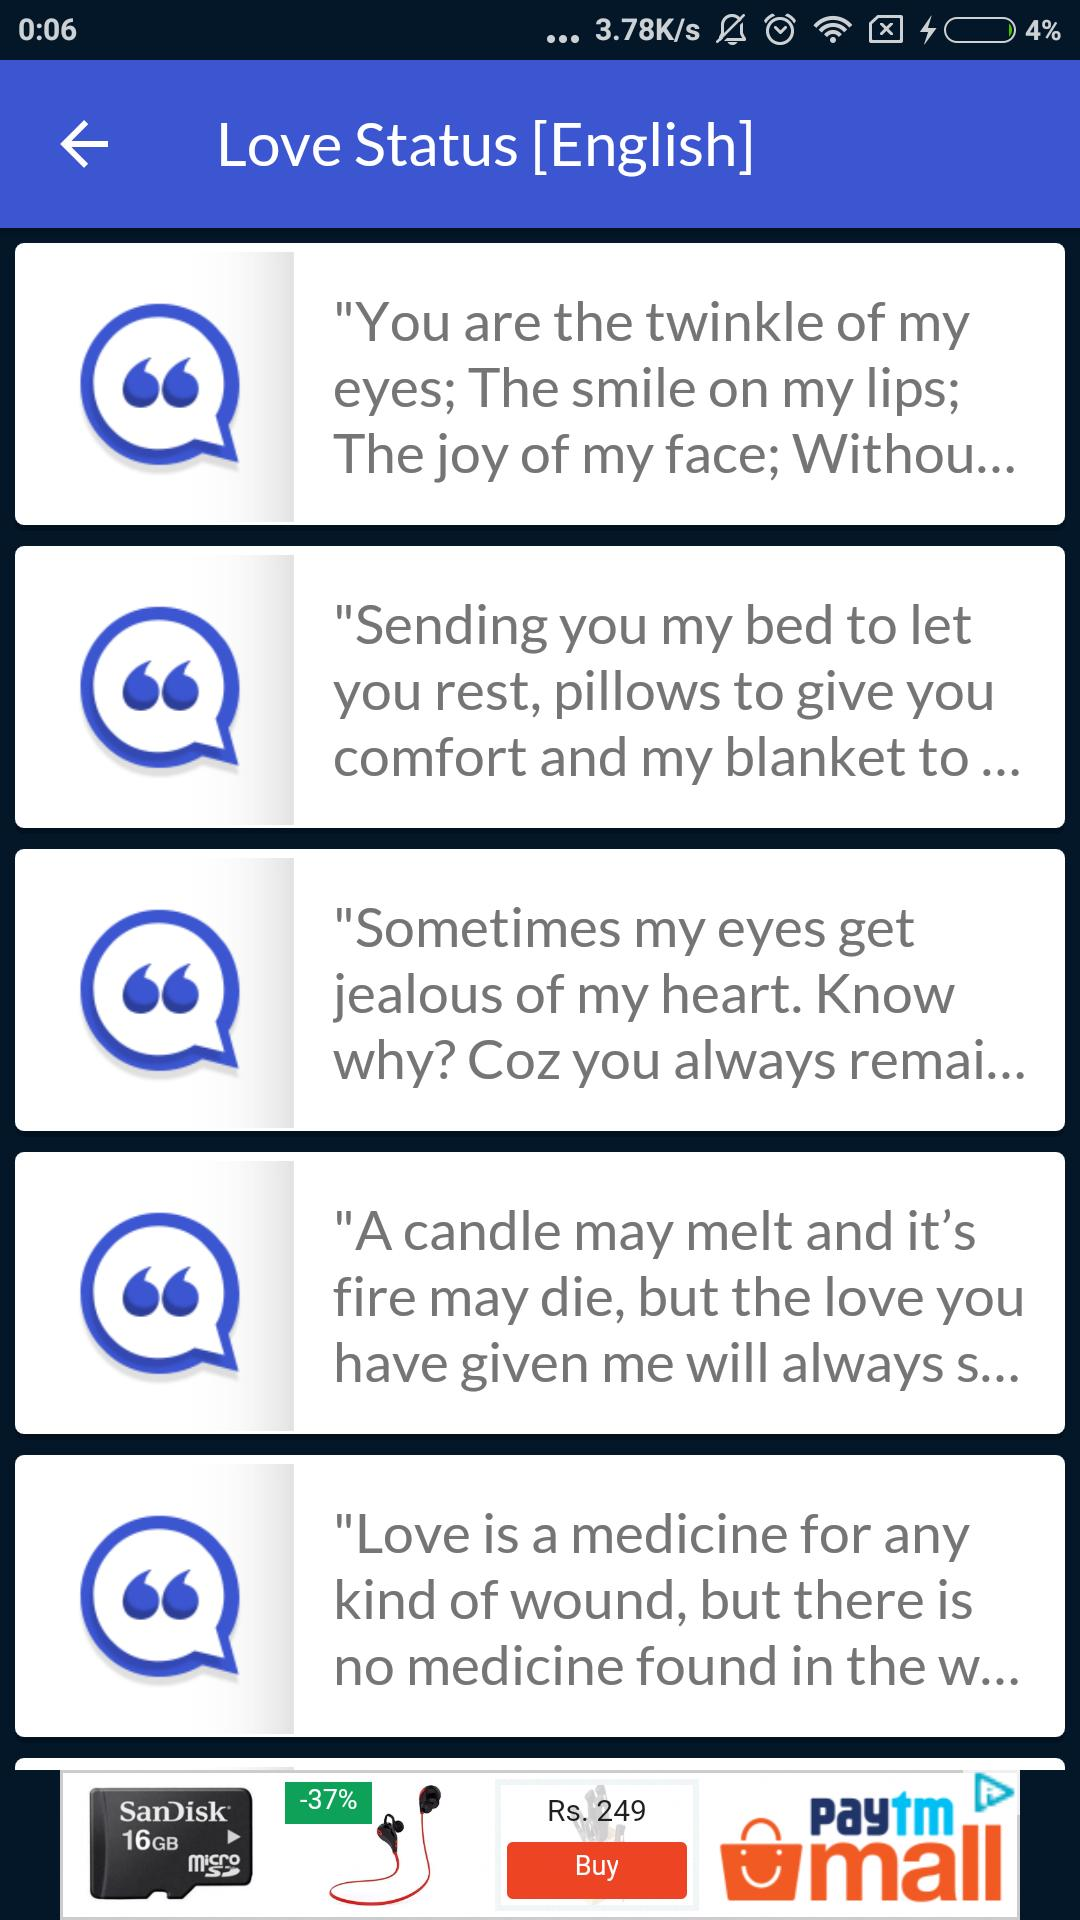 Malayalam Status App - Image and Text Messages for Android